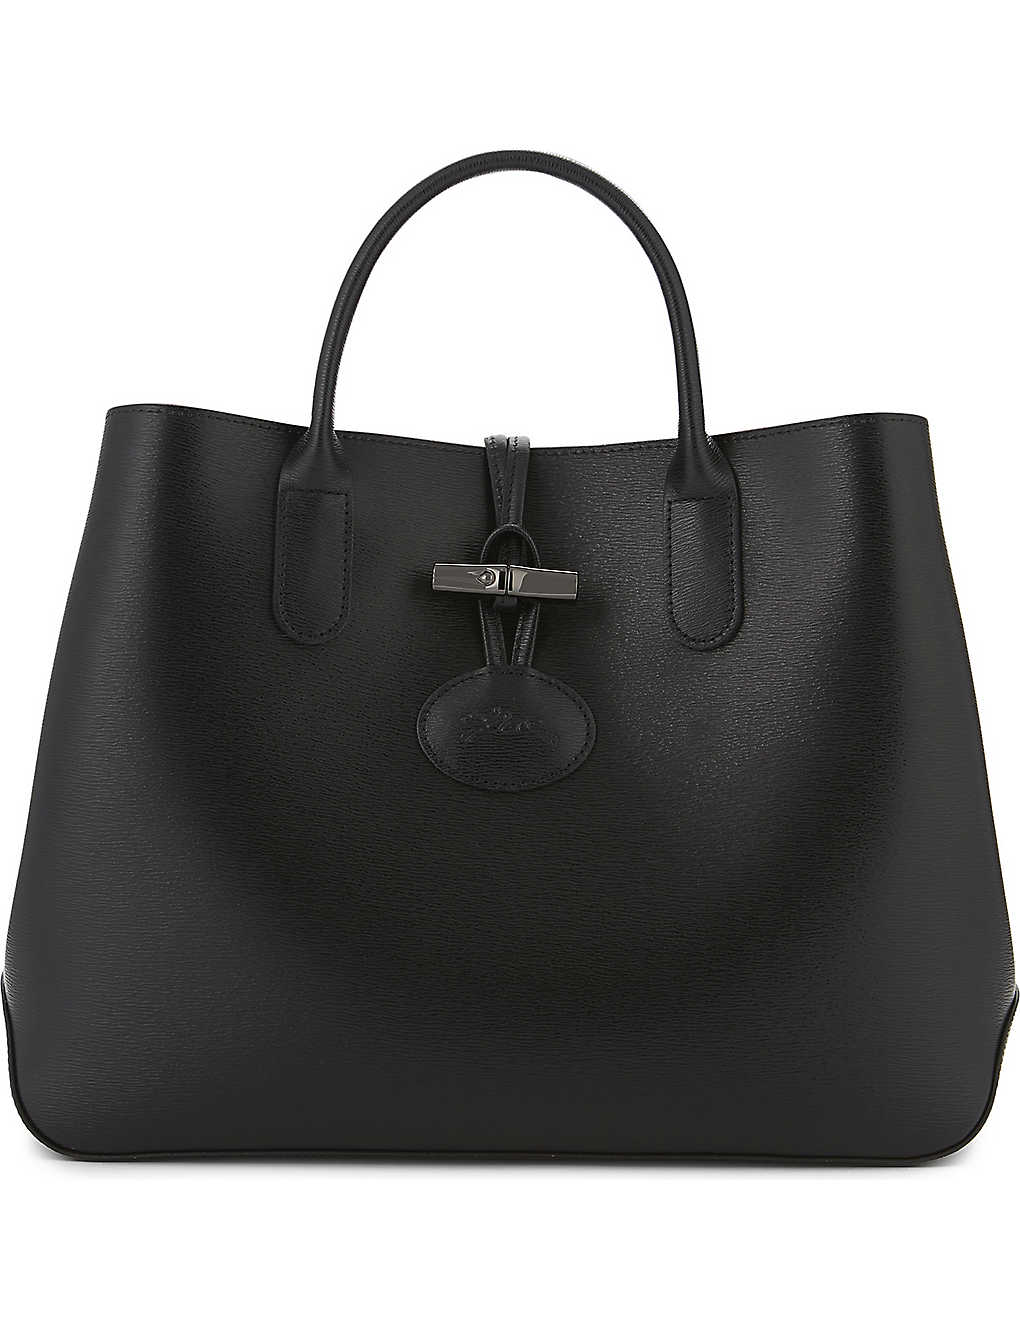 c599fb733108 LONGCHAMP - Roseau leather tote